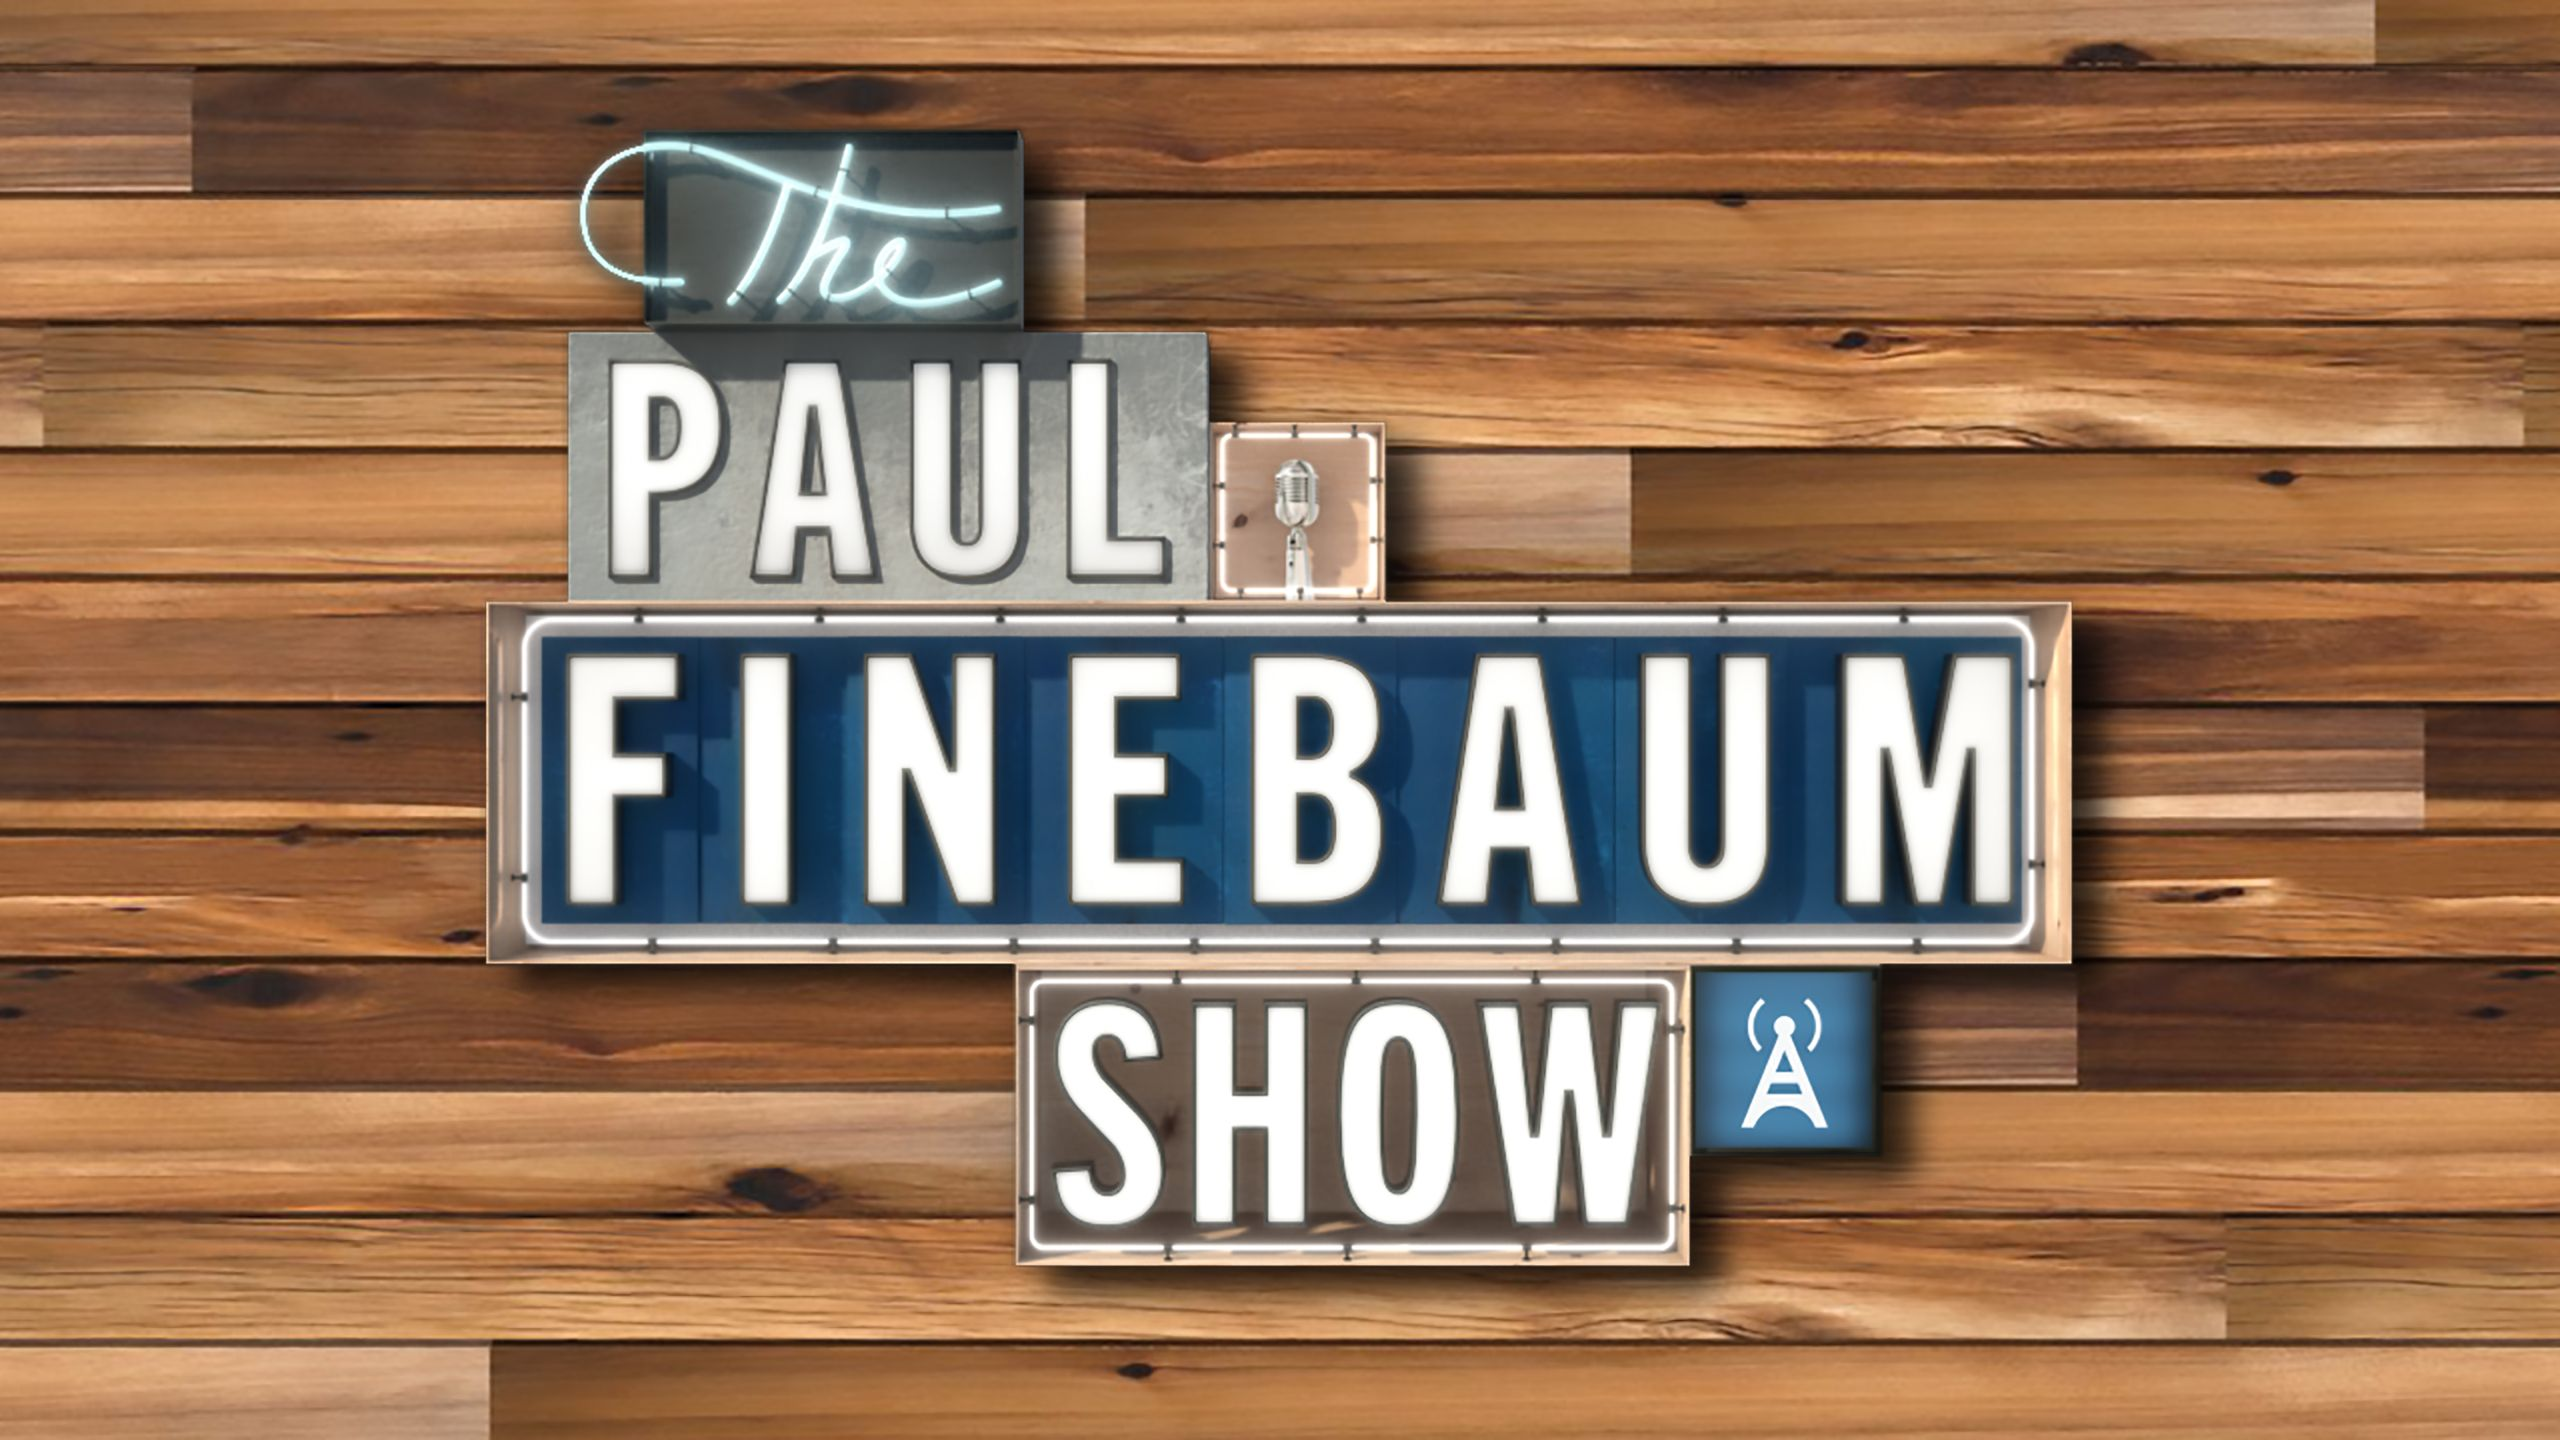 Tue, 12/12 - The Paul Finebaum Show